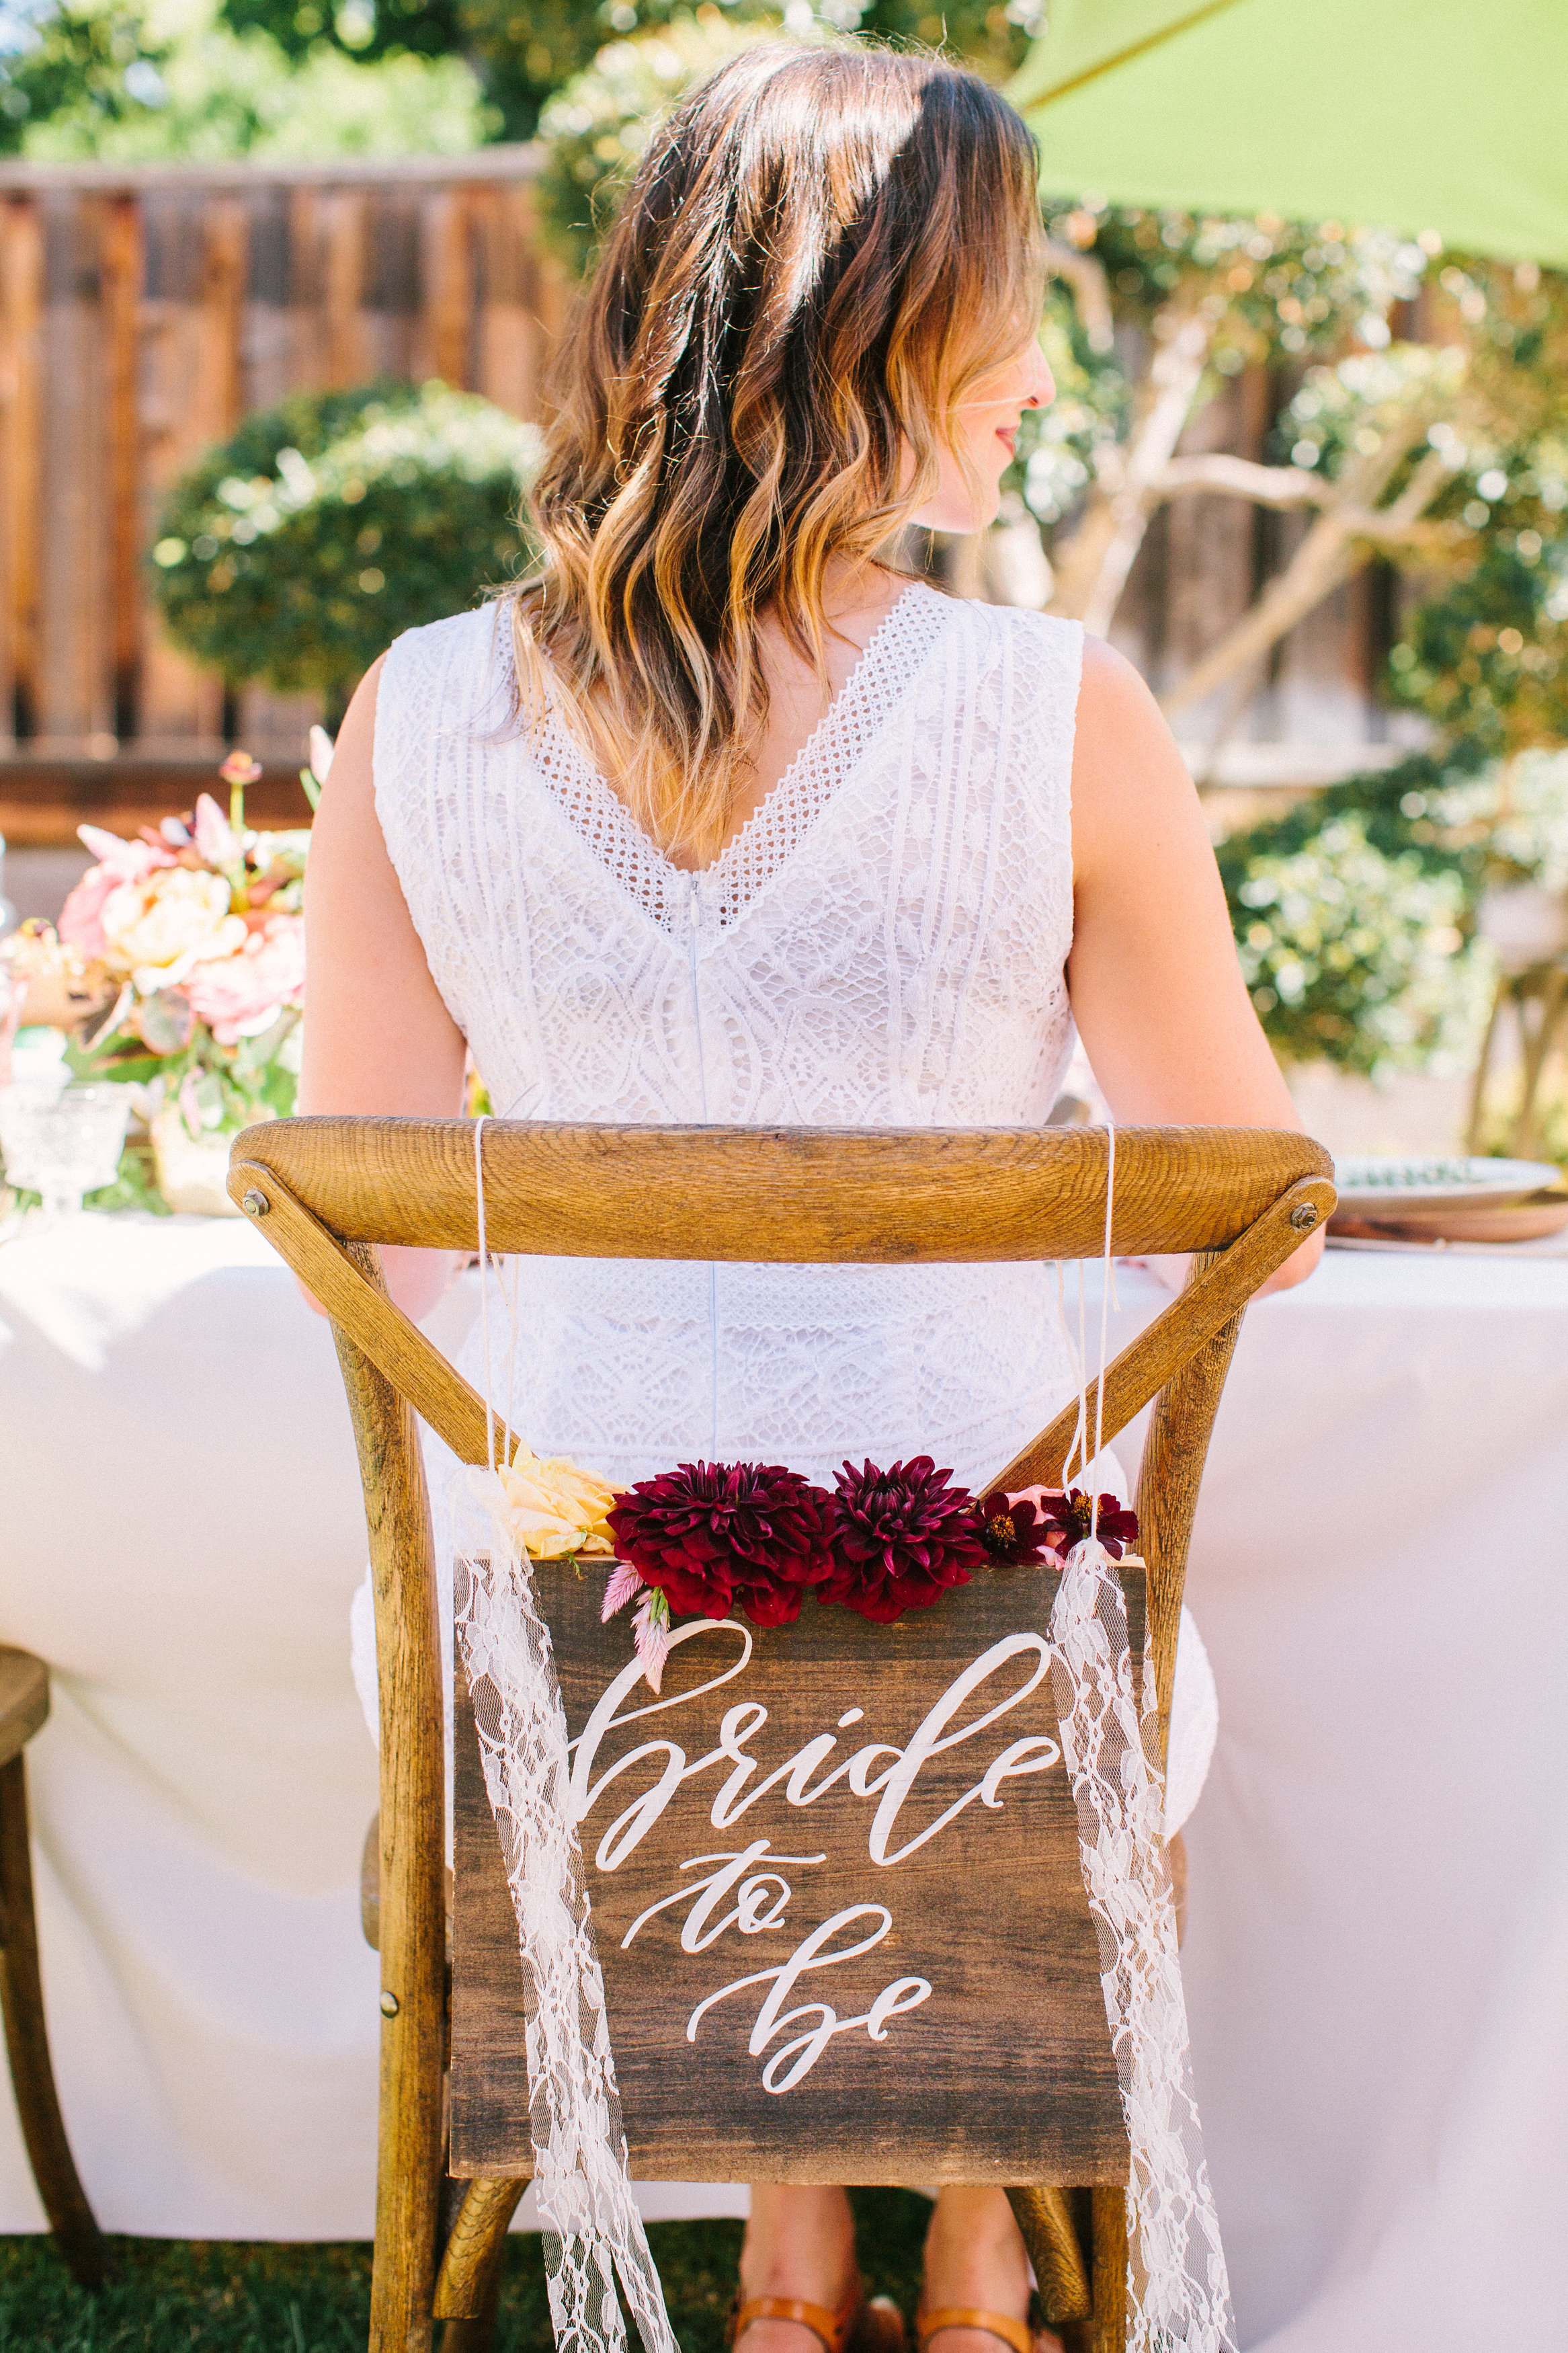 Bride to Be sign for bridal shower